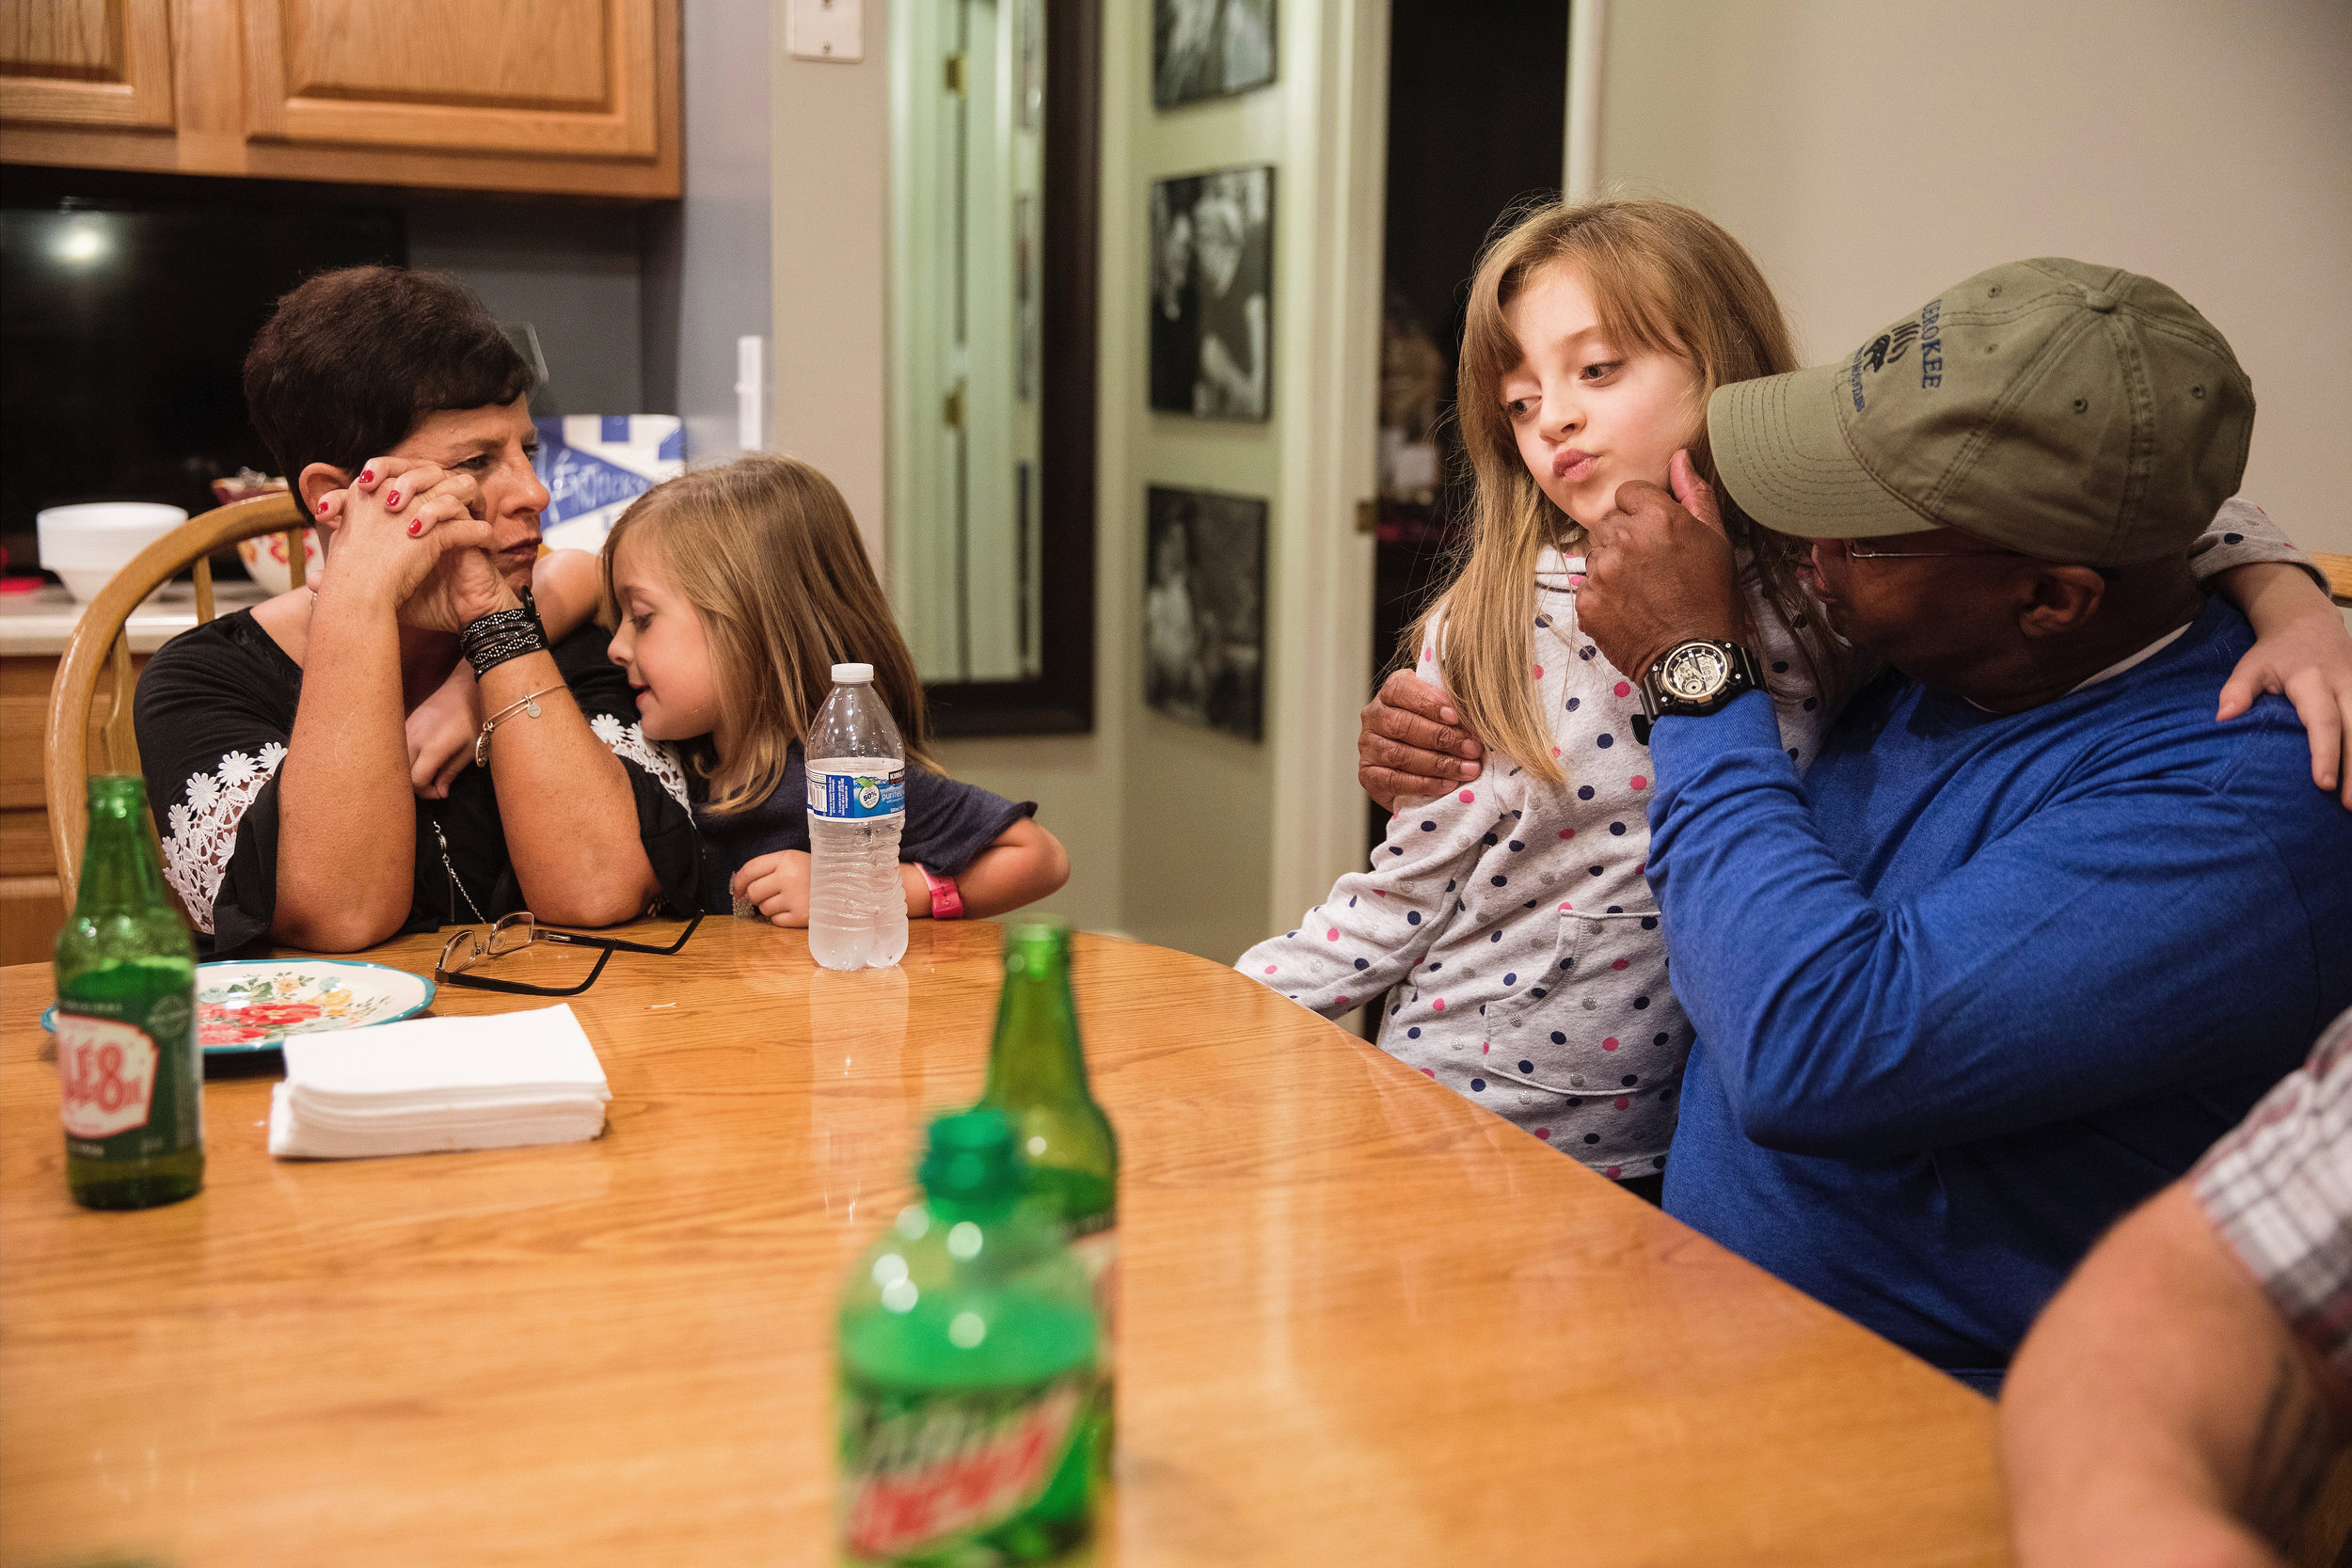 """Wayne embraces his granddaughter, Makynleigh, 7, as Anniston, 5, clings to Christy at dinner. For Wayne, his four granddaughters are his world, and he and Christy care for them after school most days during the week. After a long day of work at the police department, Wayne will typically color or watch SpongeBob SquarePants with his granddaughters, allowing him to decompress. """"I can feel the stress leave my body because of their innocence,"""" he says."""